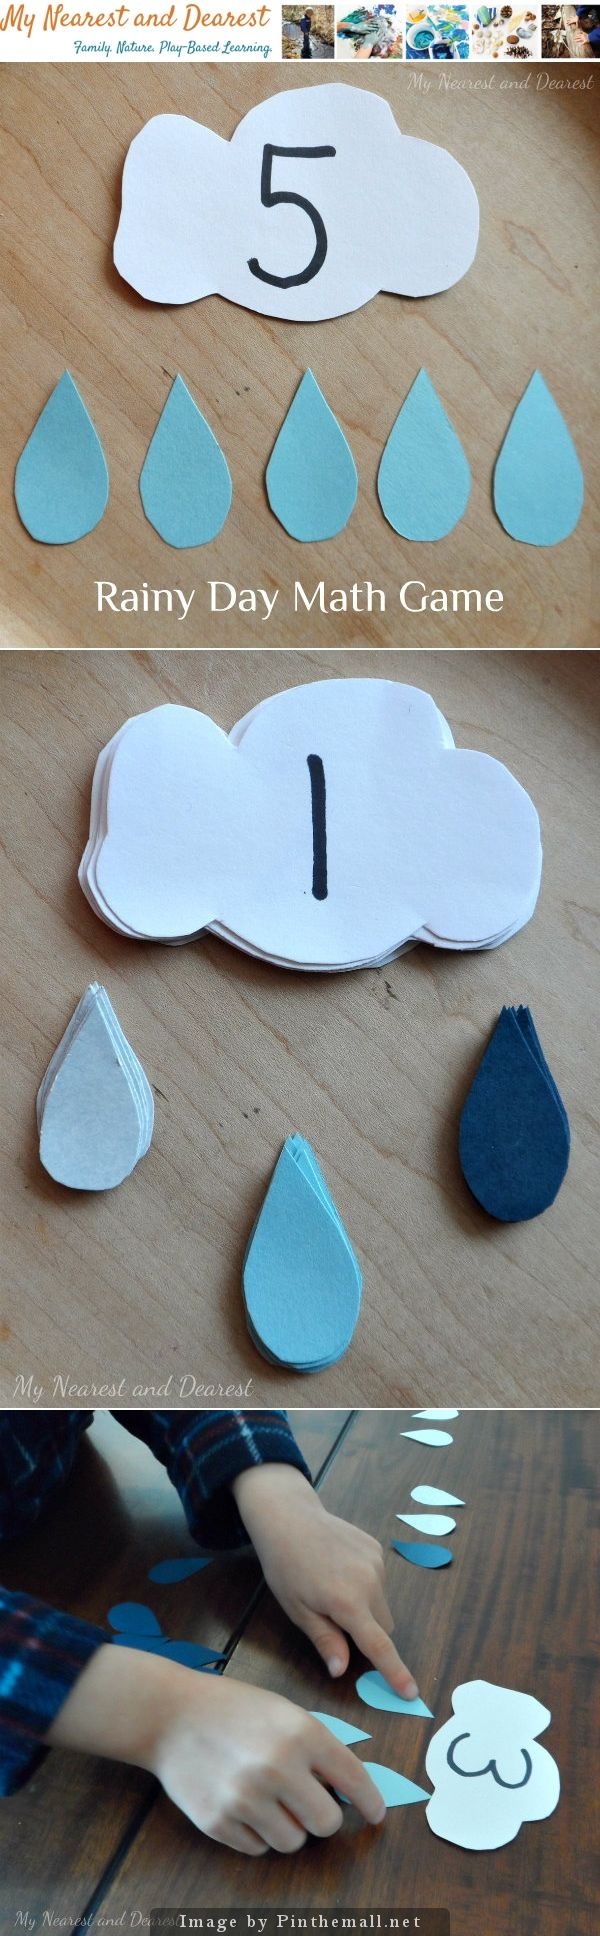 Rainy Day Math Games - This easy-to-make math game is inspired by a ...